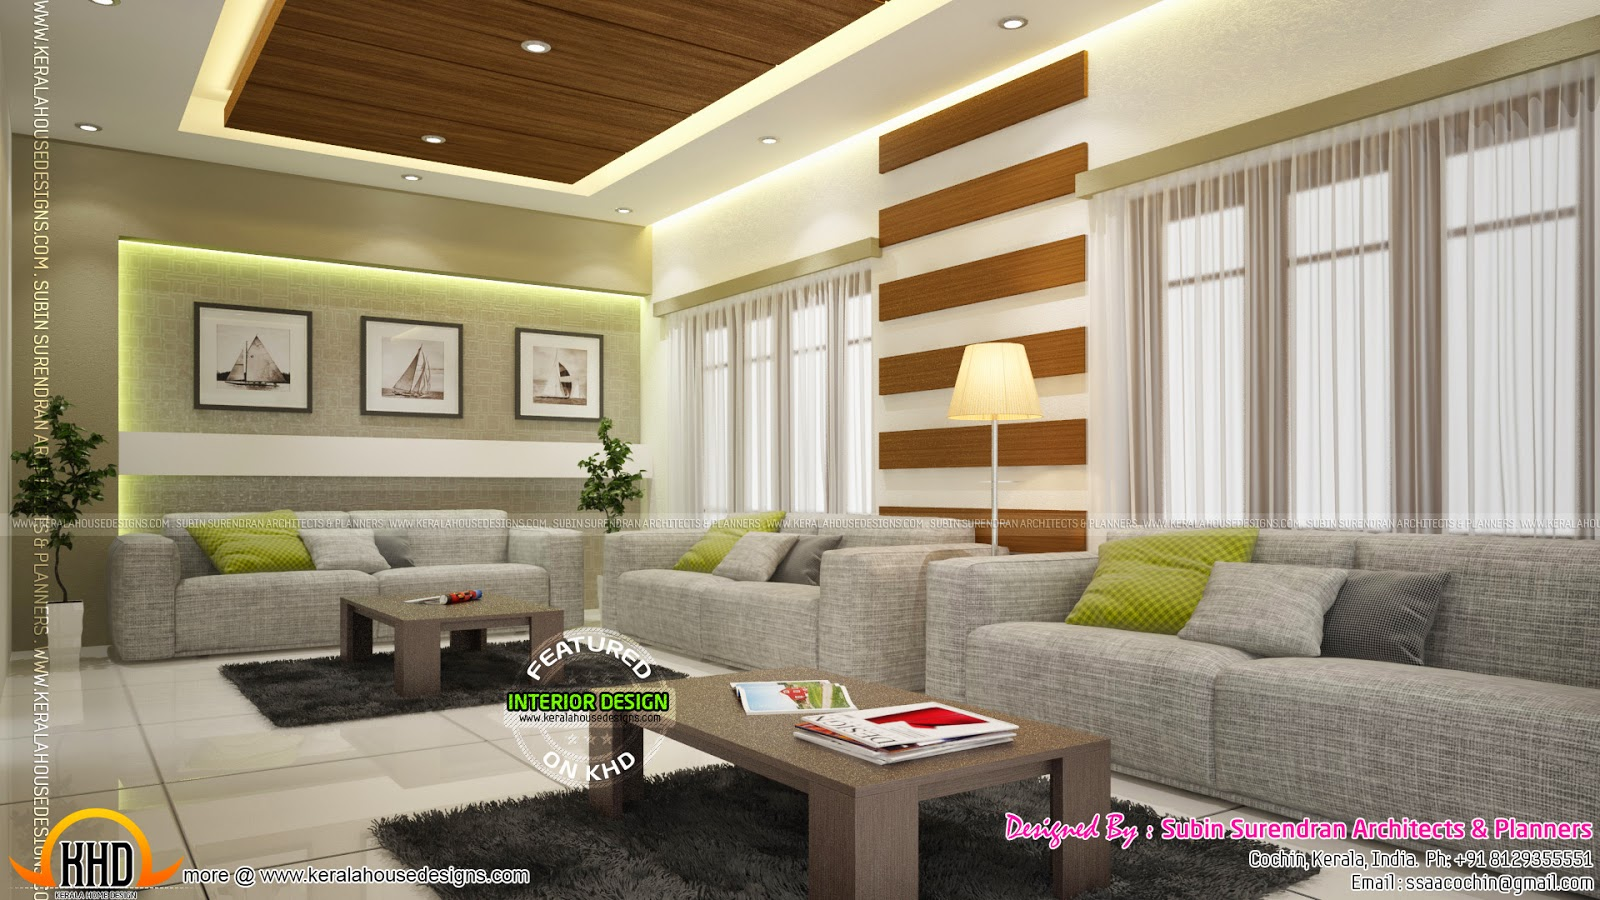 Beautiful home interior designs kerala home design and for Kerala house living room interior design